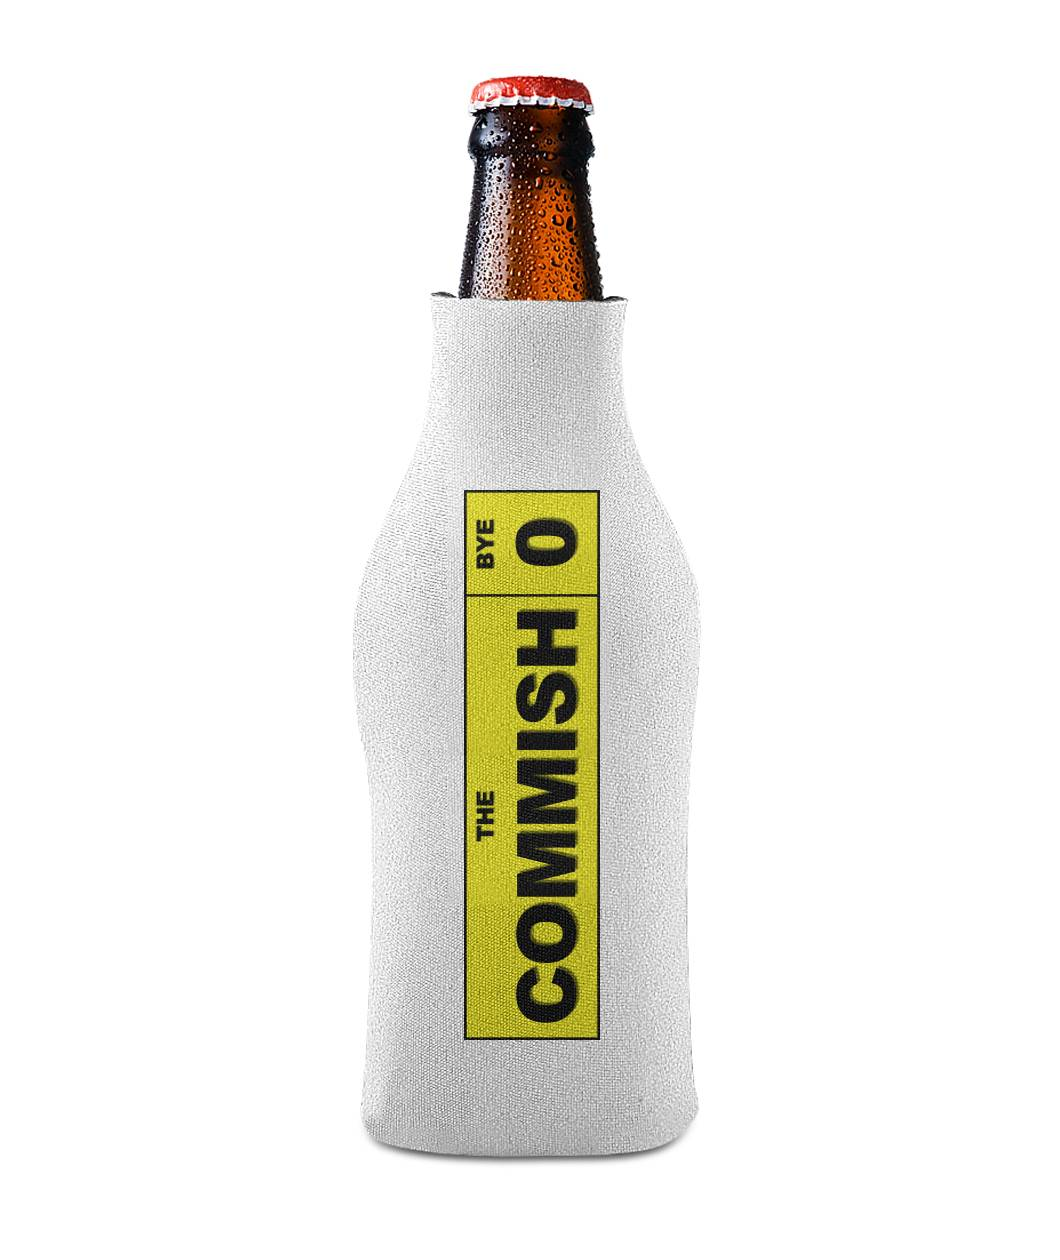 The Commish Label Koozie Bottle Sleeve - SaveTheDraft.com